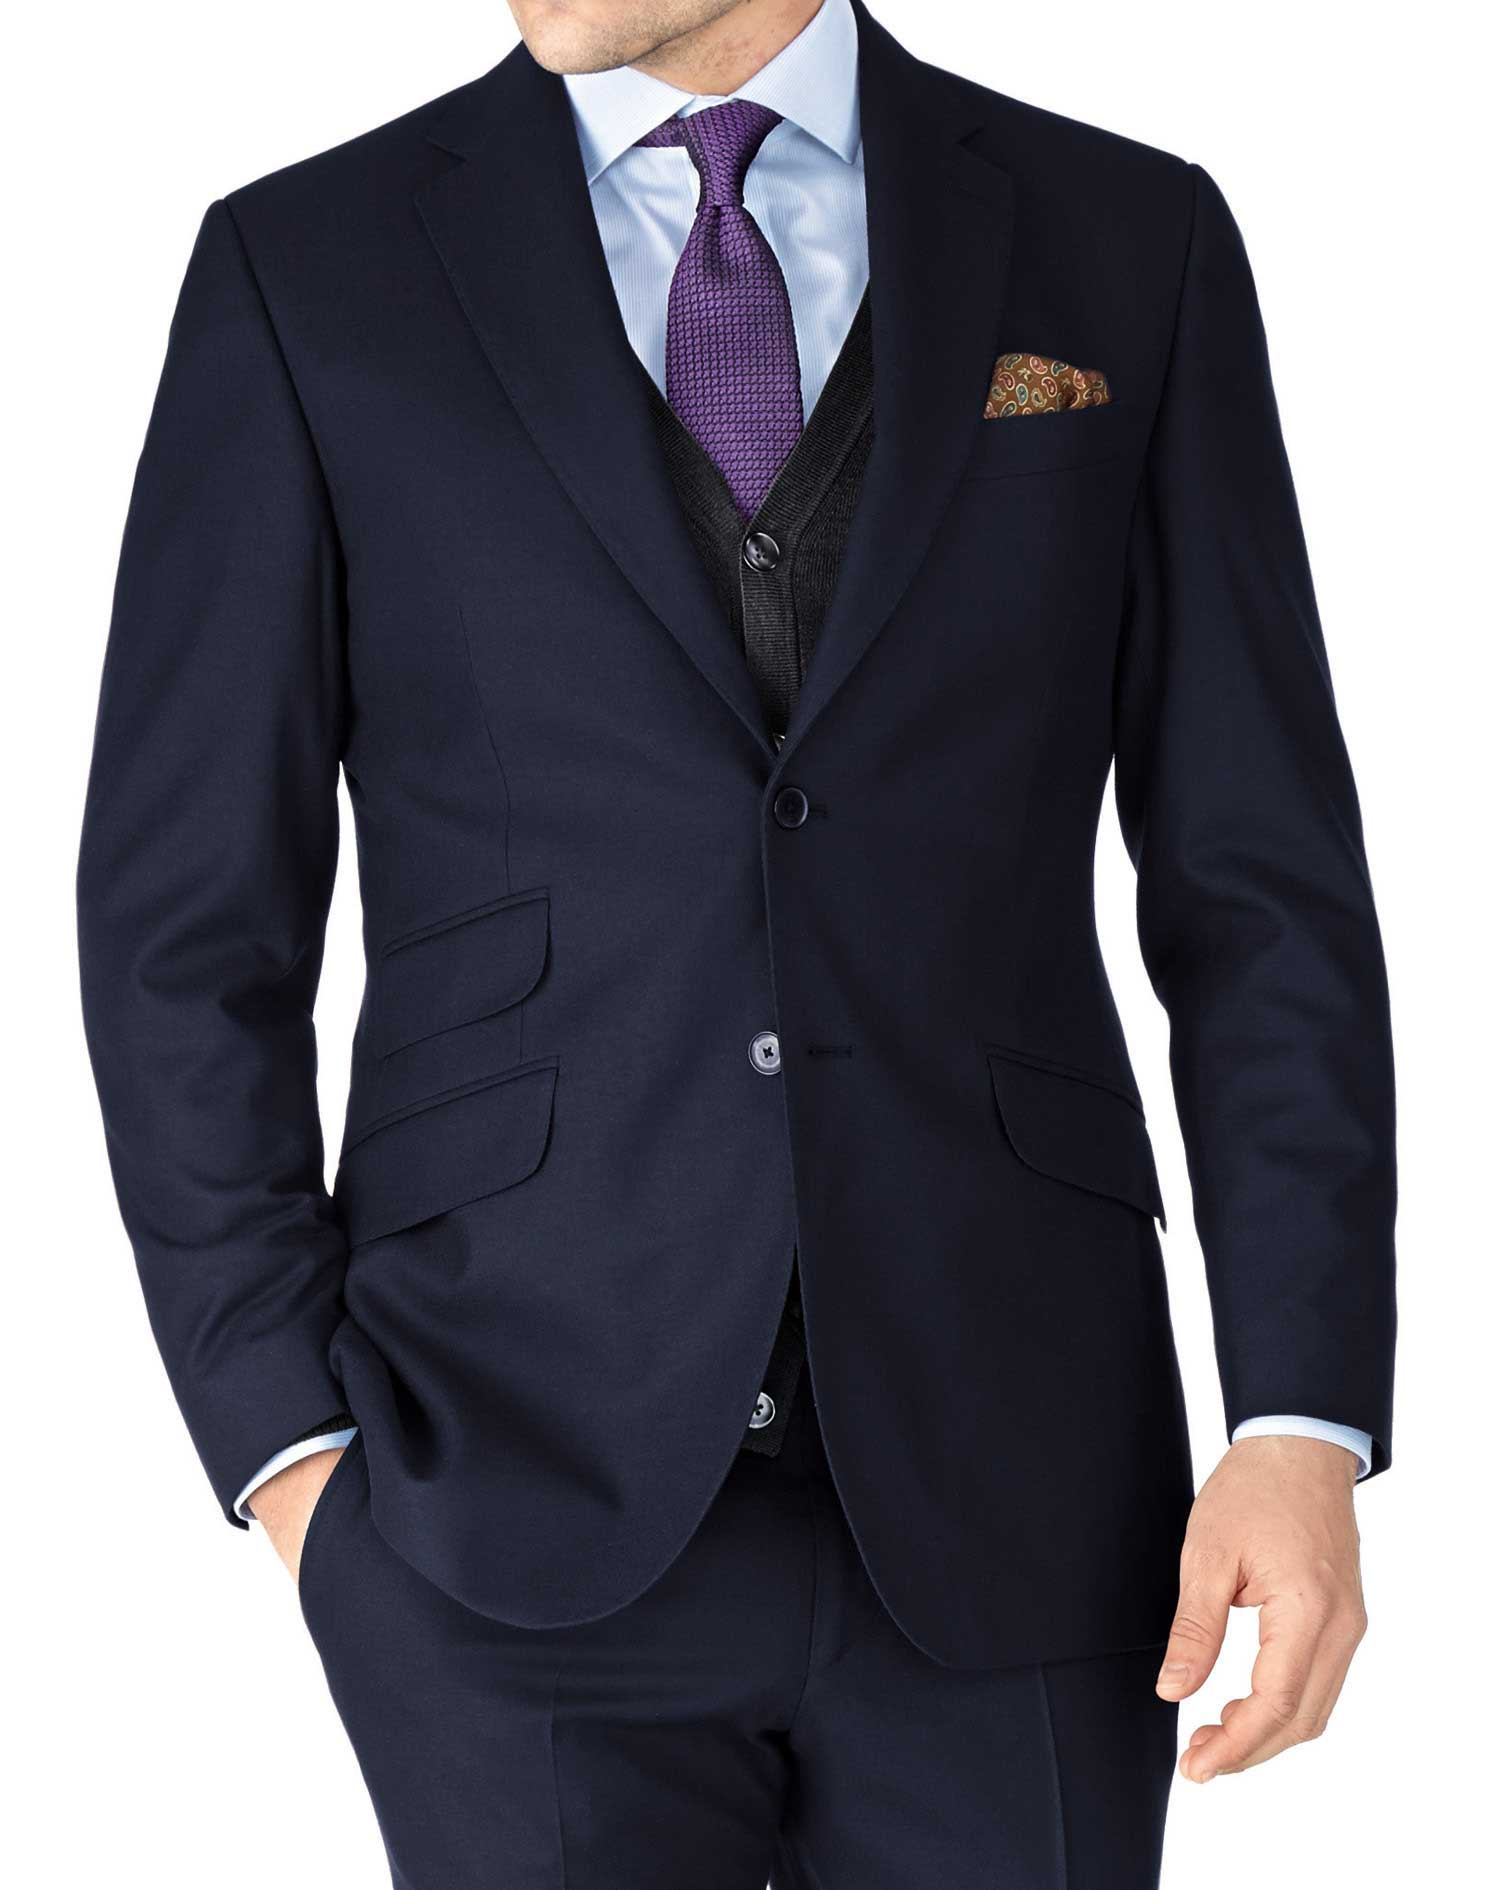 Get 17 live Charles Tyrwhitt discounts codes and vouchers: all of our Charles Tyrwhitt promo codes are checked and working for December – siti-immobilier.tk